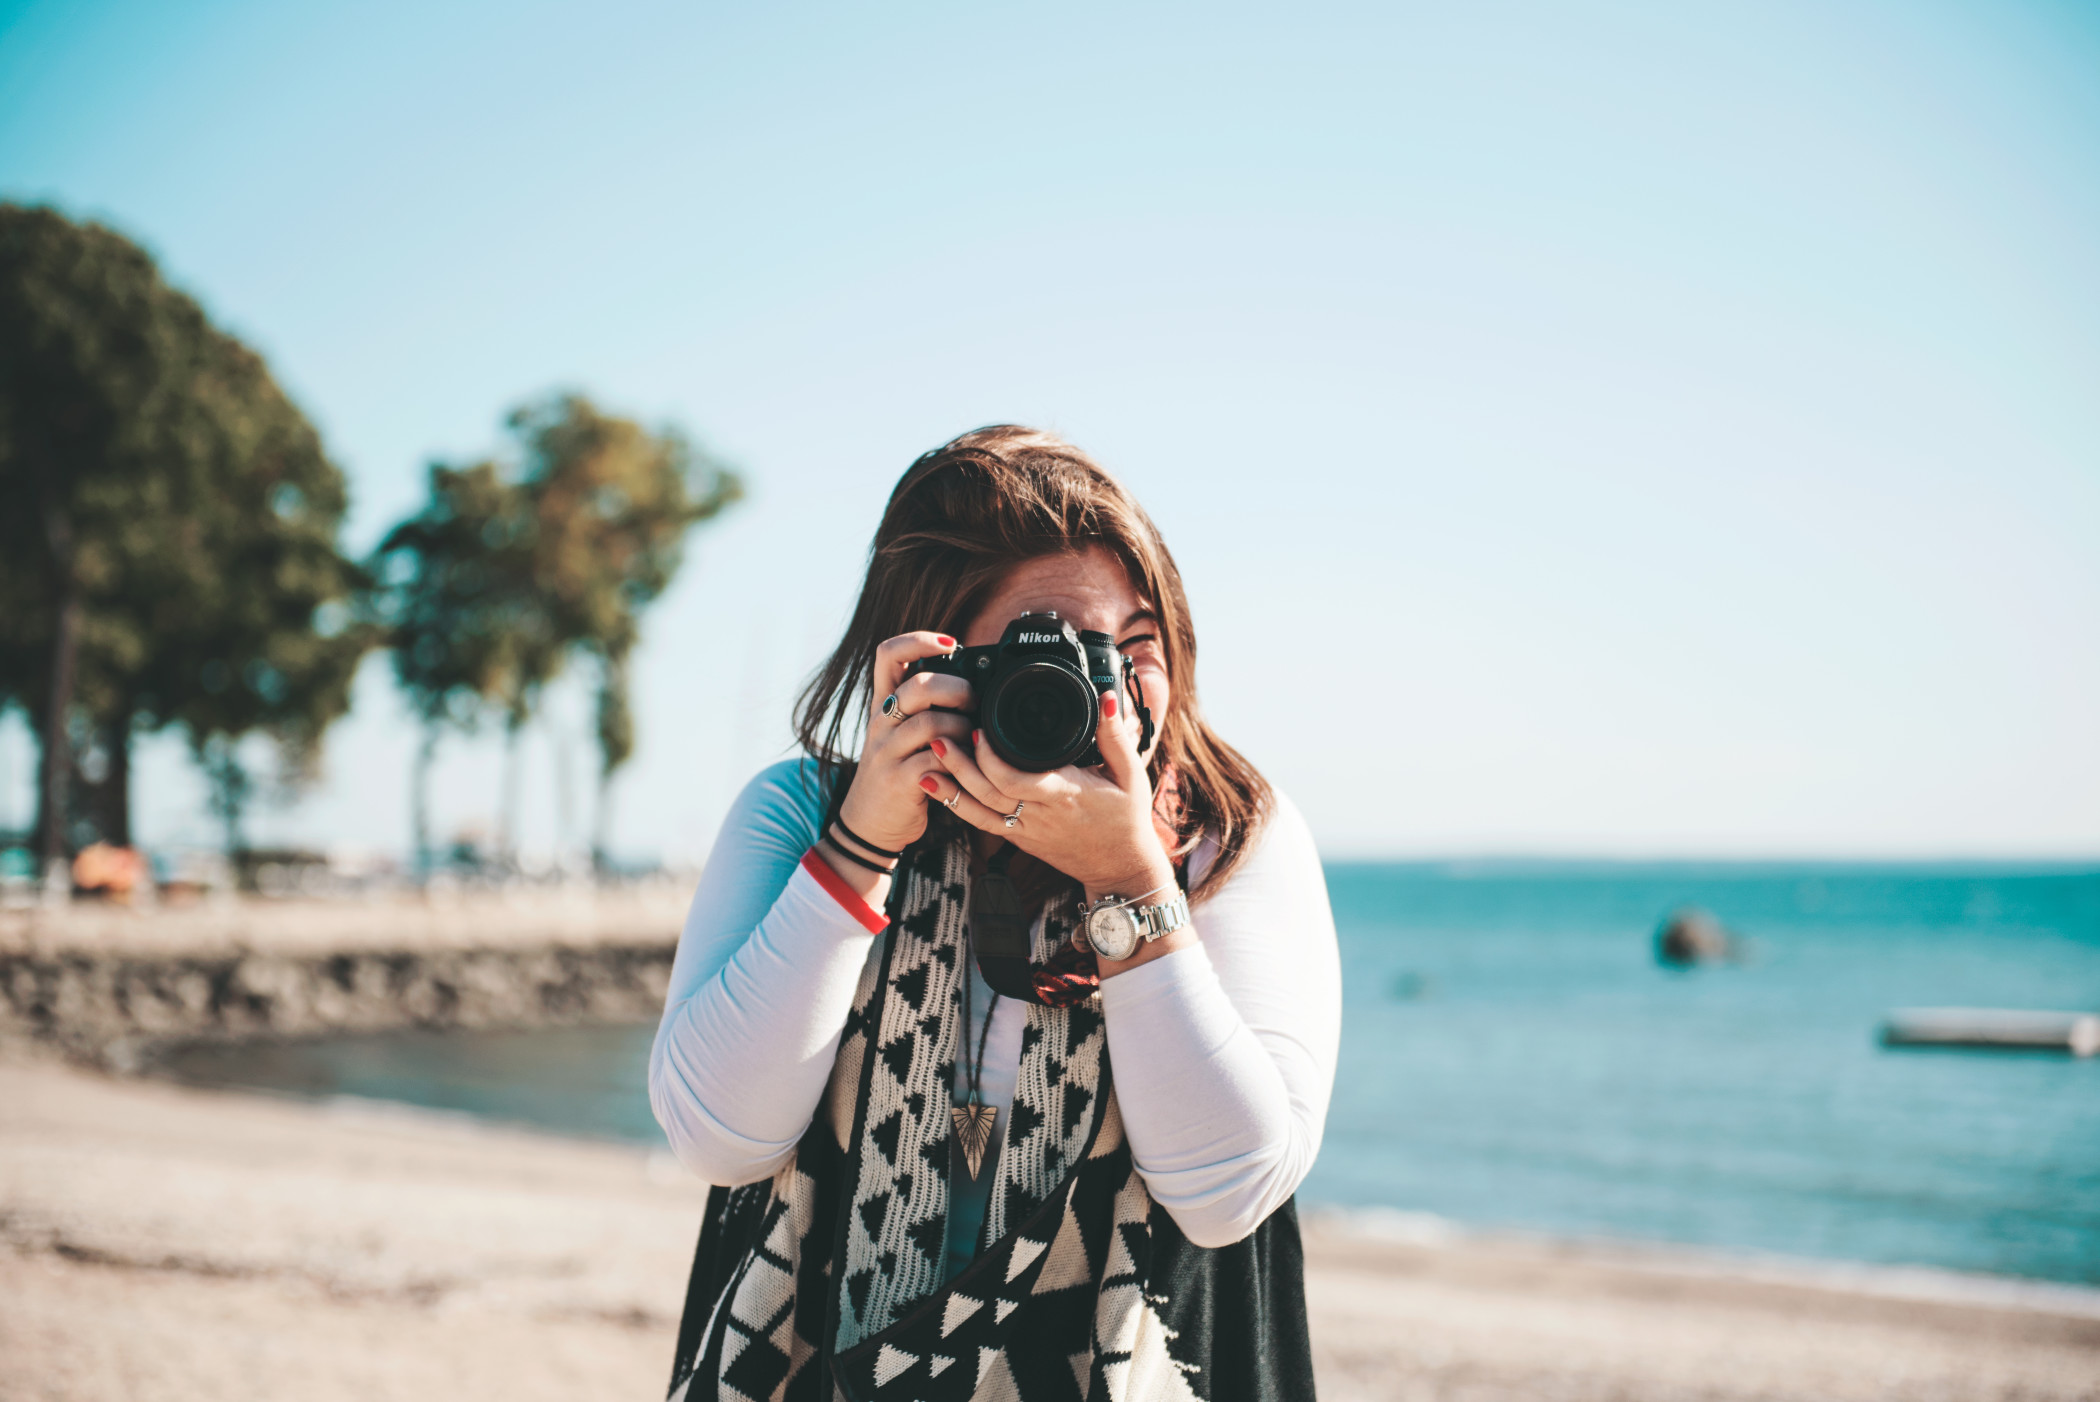 A Beginners Guide To Dslr Cameras Nations Photo Lab